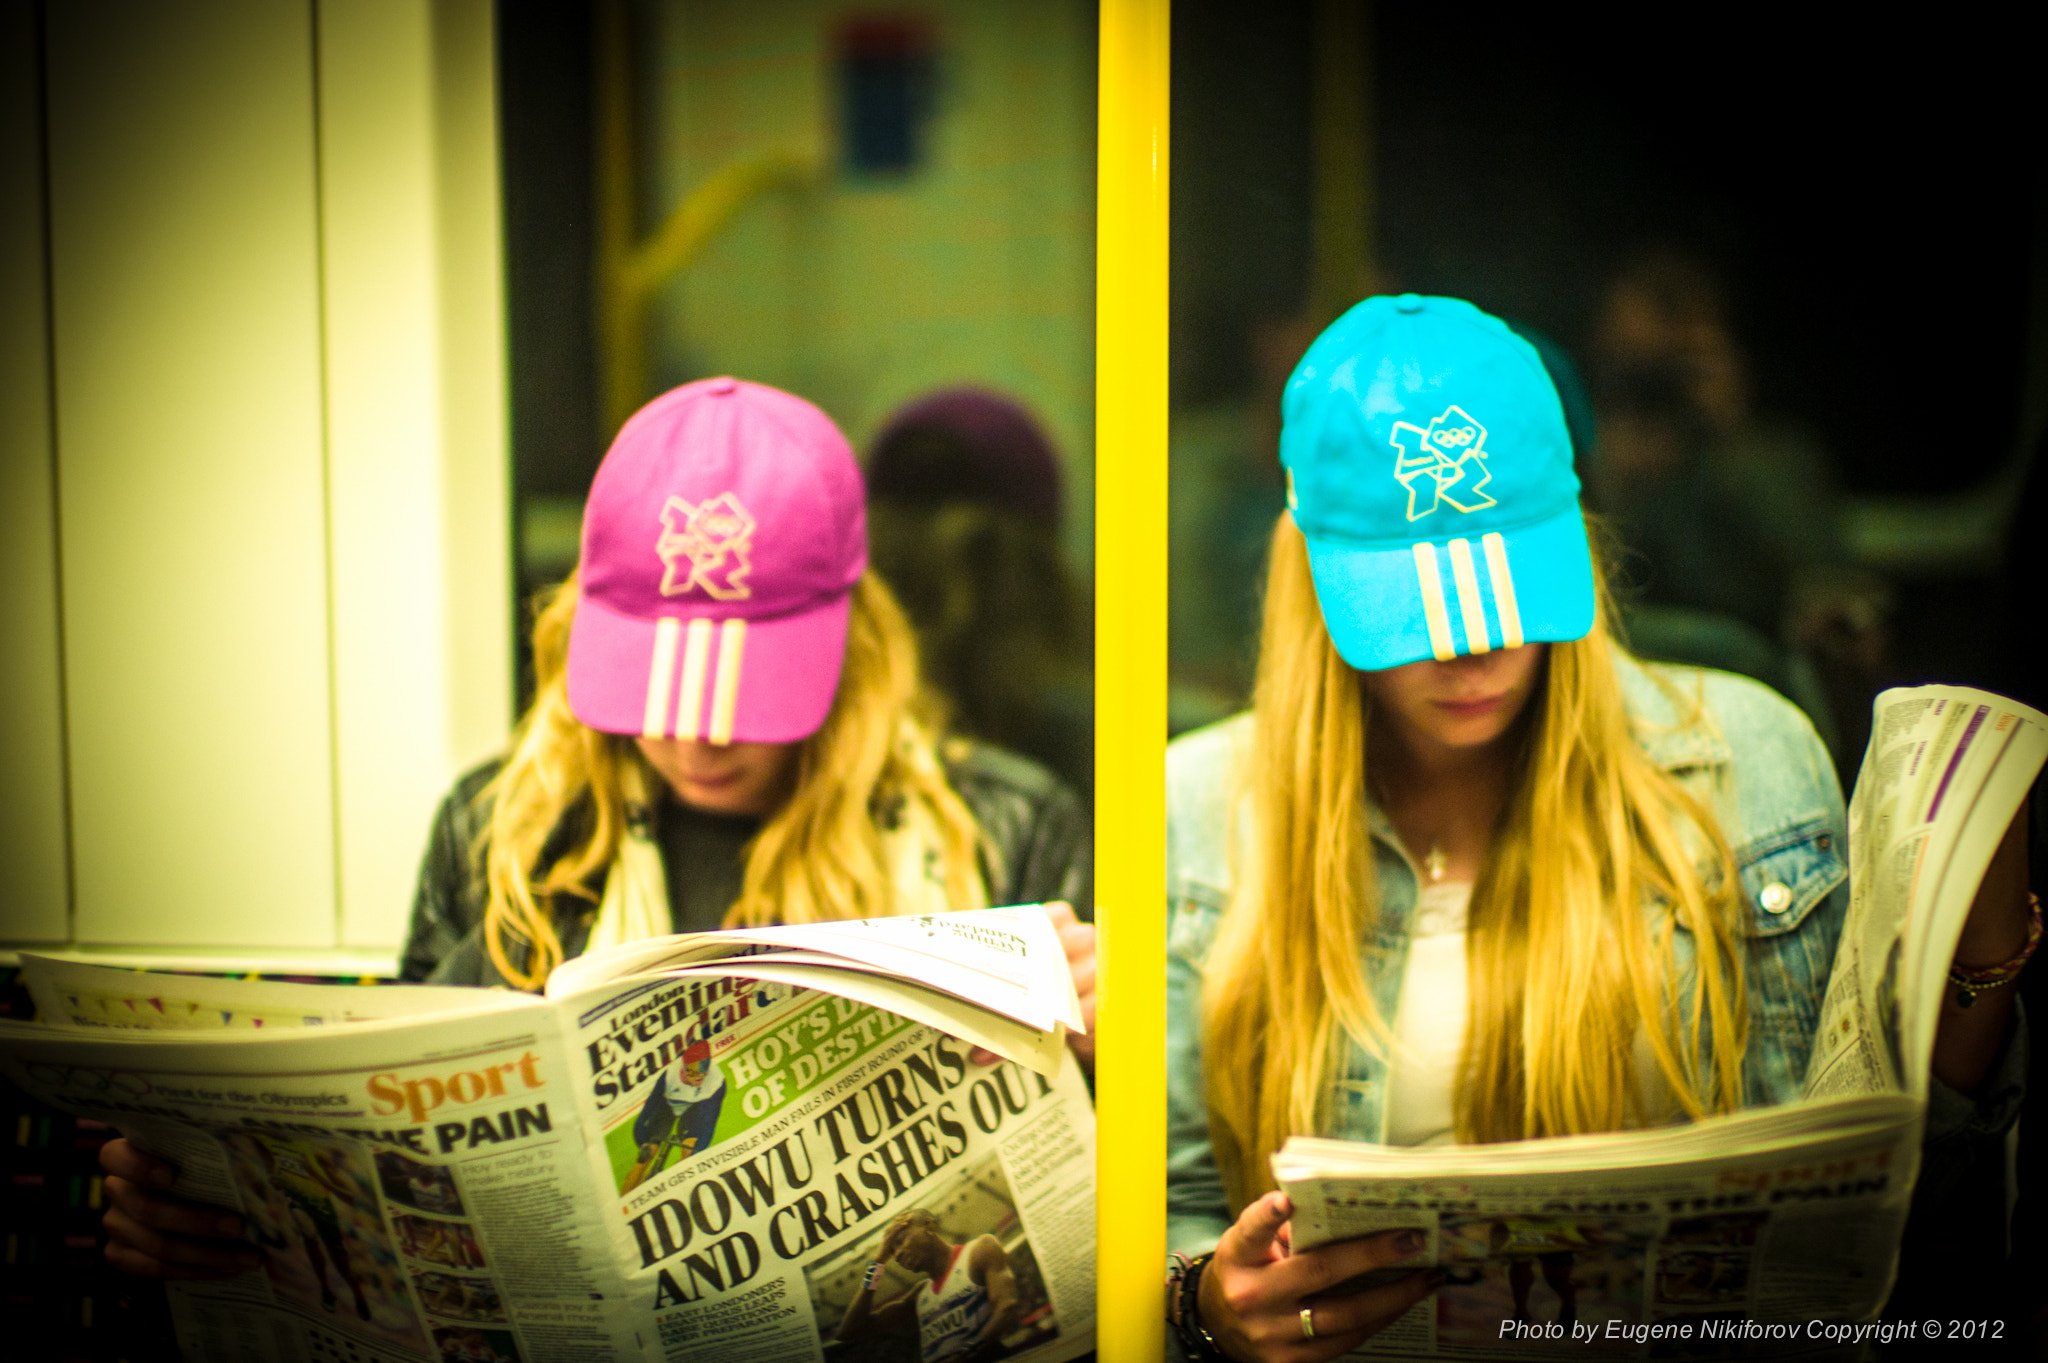 Photograph London 2102 Олимпиские блондинки, olympic blondes by Eugene Nikiforov on 500px